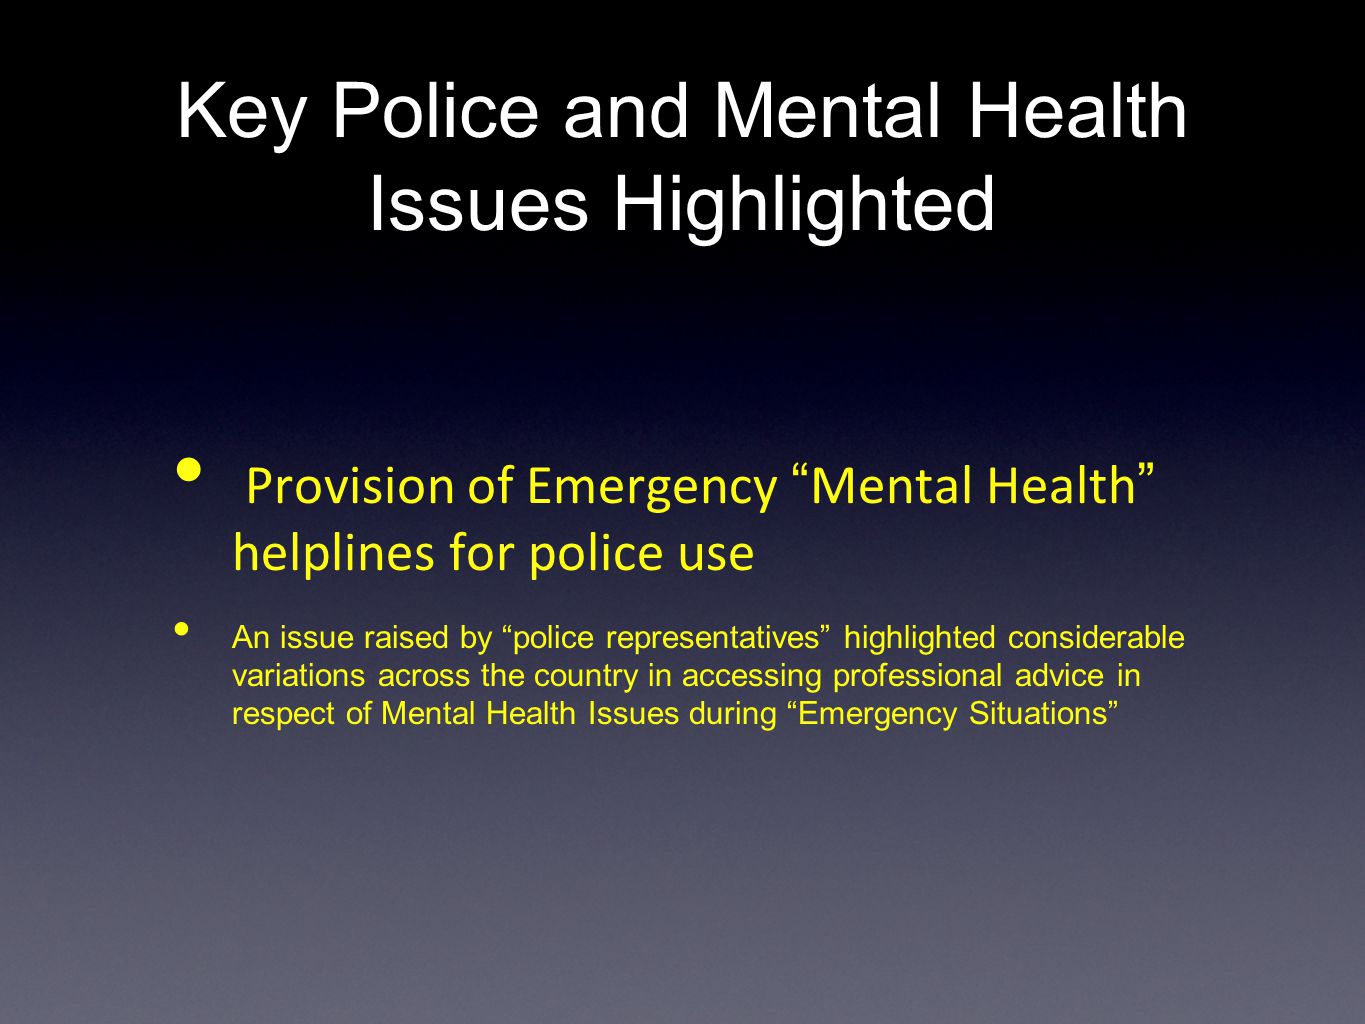 Key Police and Mental Health Issues Highlighted Provision of Emergency Mental Health helplines for police use An issue raised by police representatives highlighted considerable variations across the country in accessing professional advice in respect of Mental Health Issues during Emergency Situations